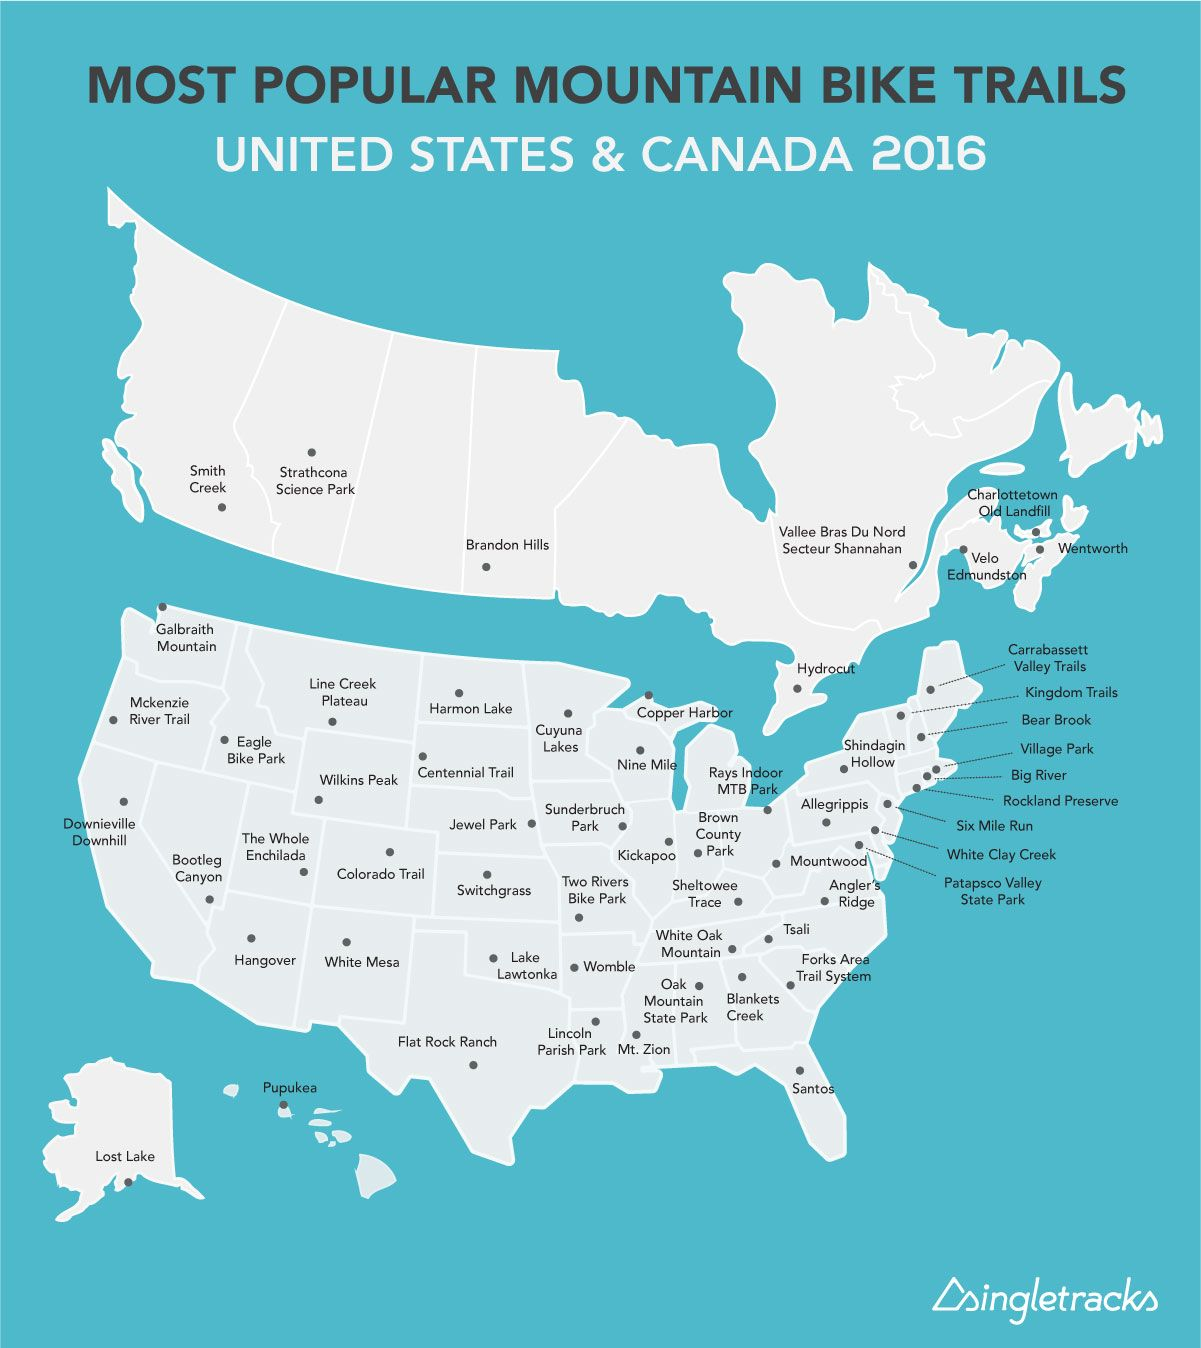 Most Popular Mountain Bike Trails in the US and Canada, State-by-State (2016)